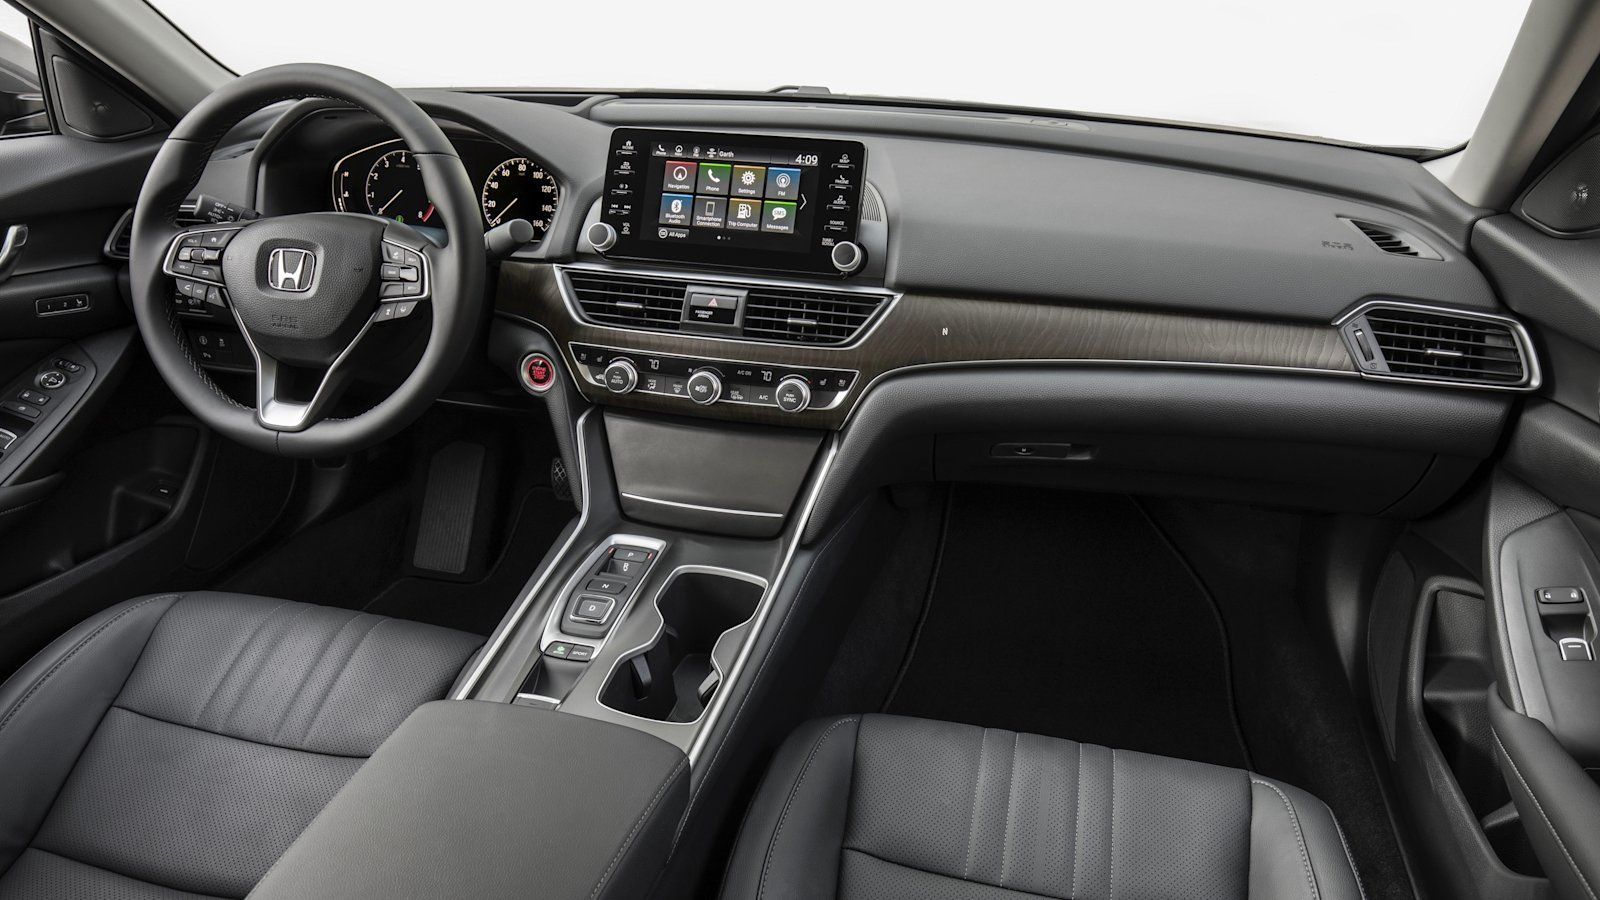 2019 Honda Accord Ex L 2 0 T Interior. Feels free to